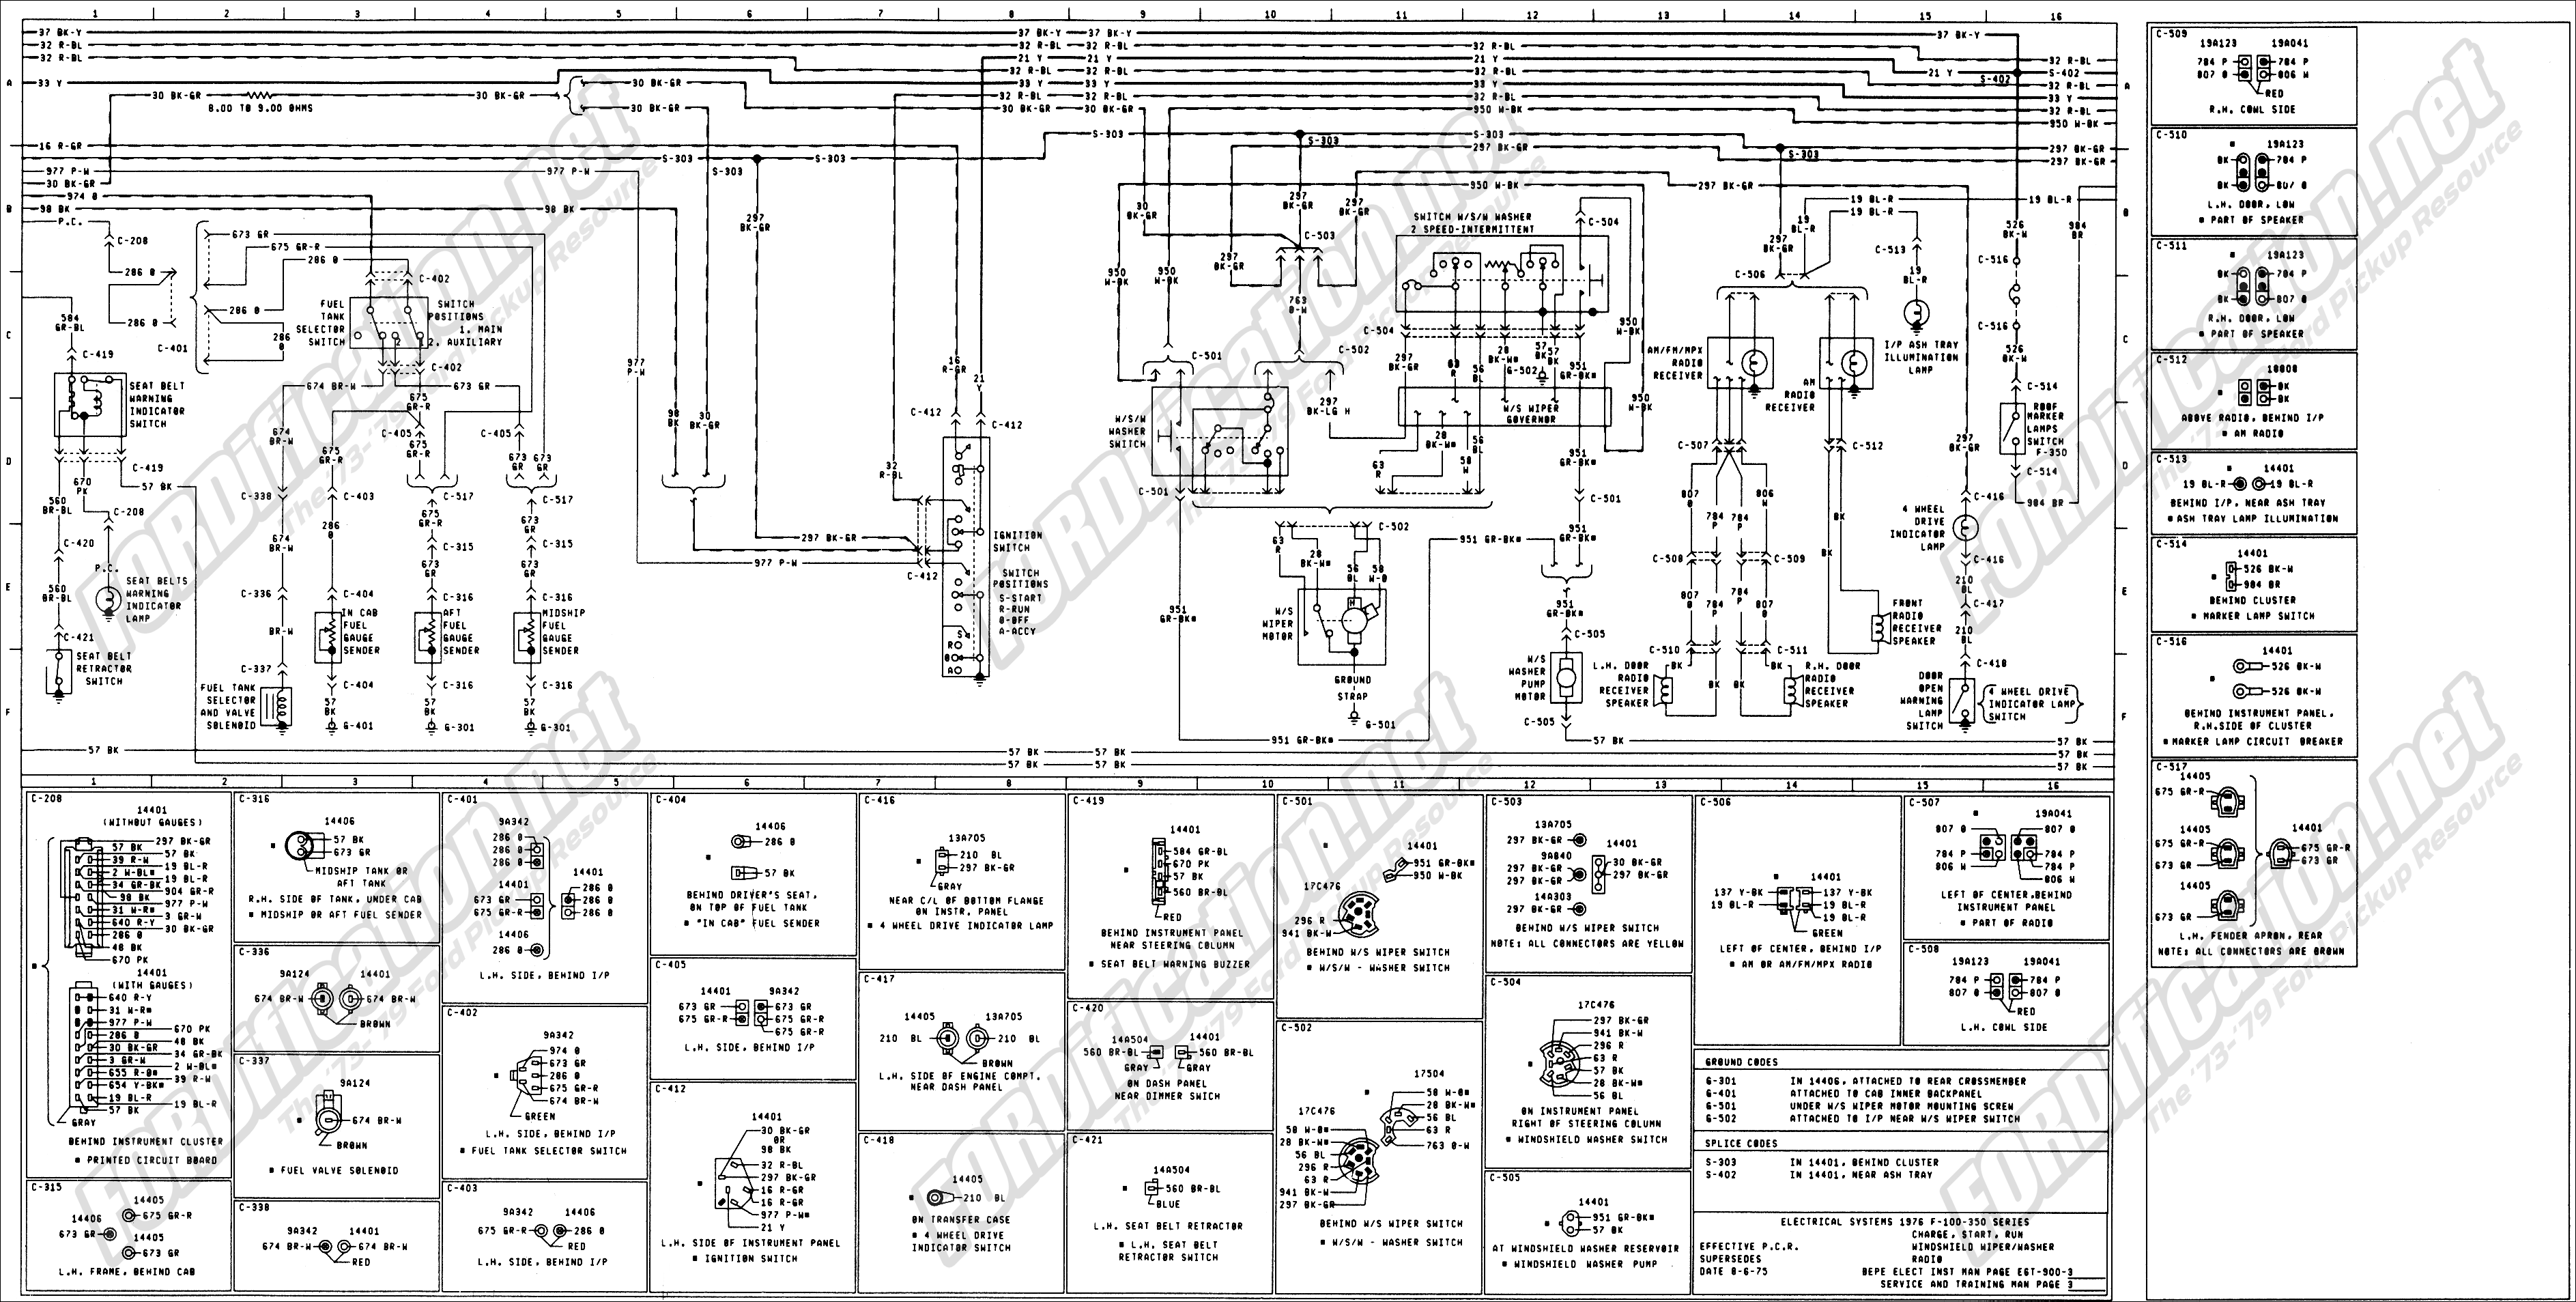 1973 1979 Ford Truck Wiring Diagrams Schematics Fuse Box Diagram Hot Rod